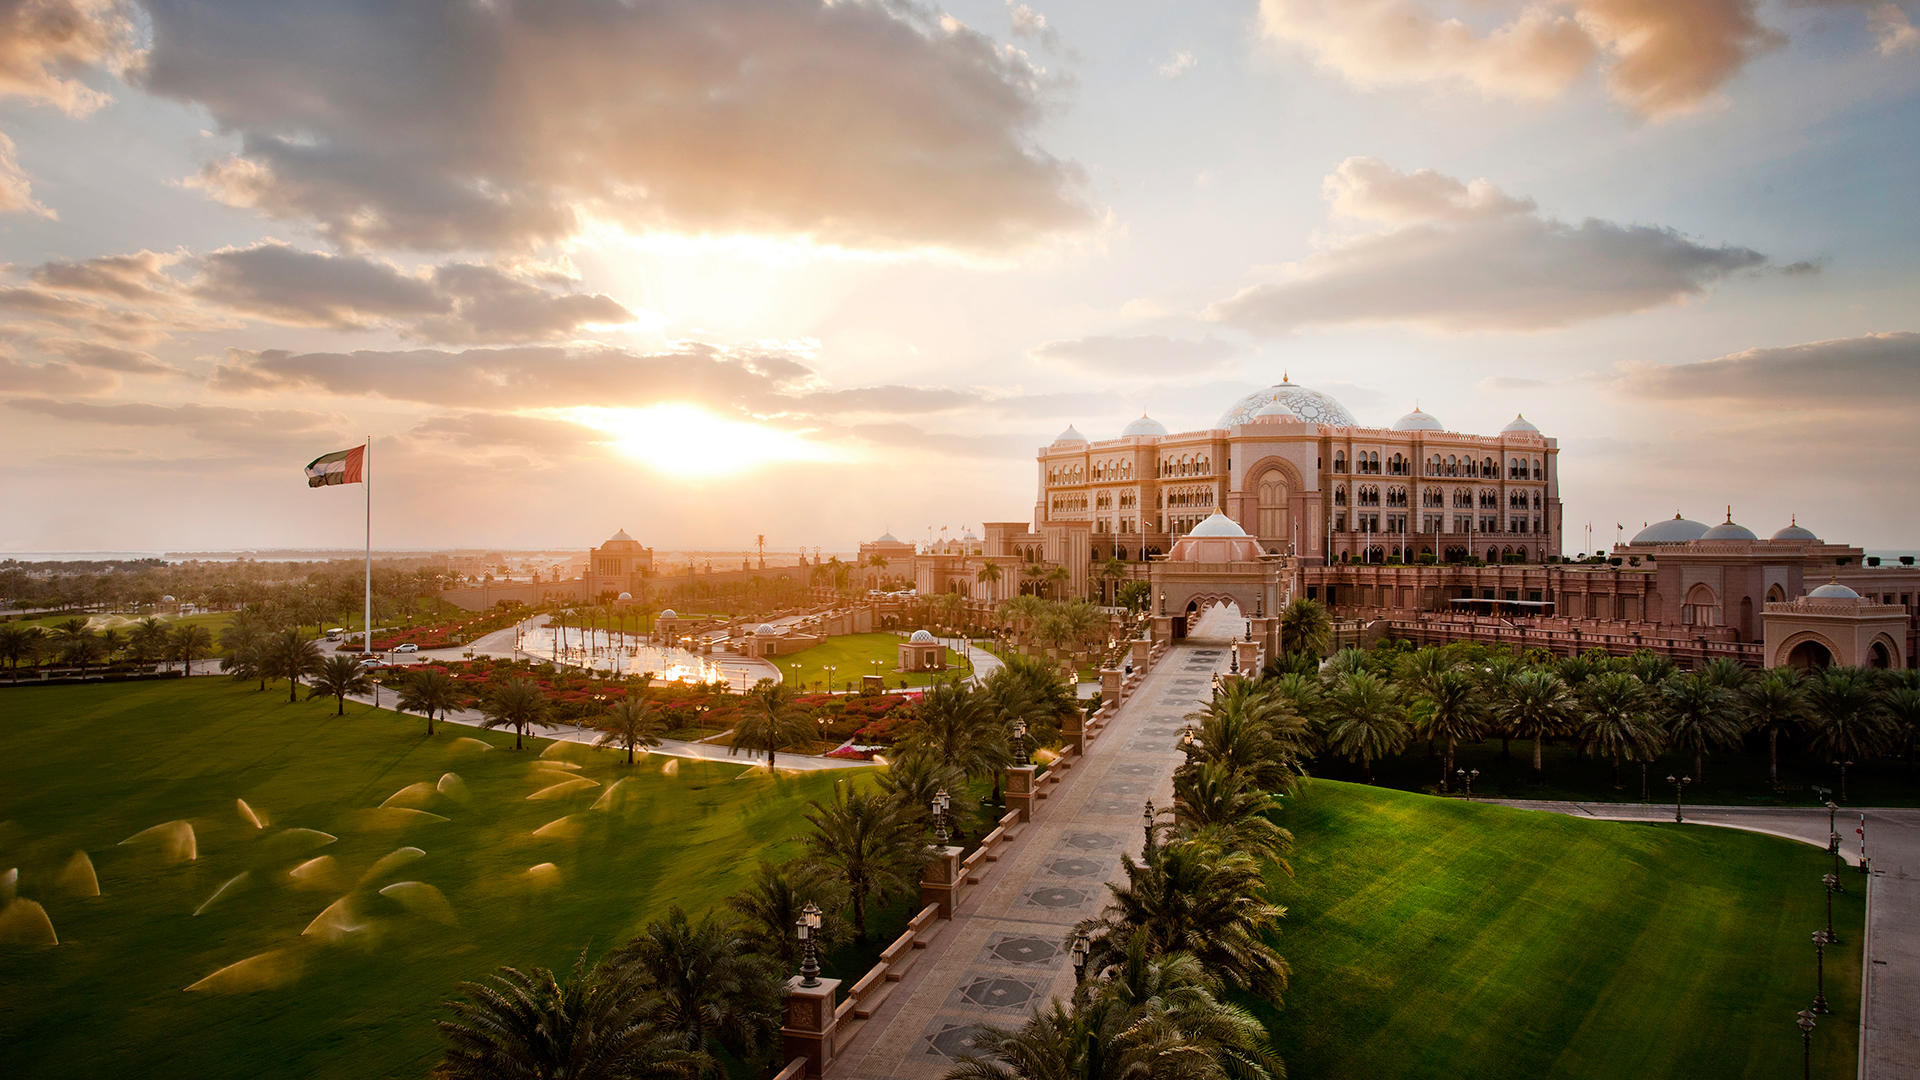 stackliving-luxurious-hotels-01-emirates-palace-abu-dhabi-01